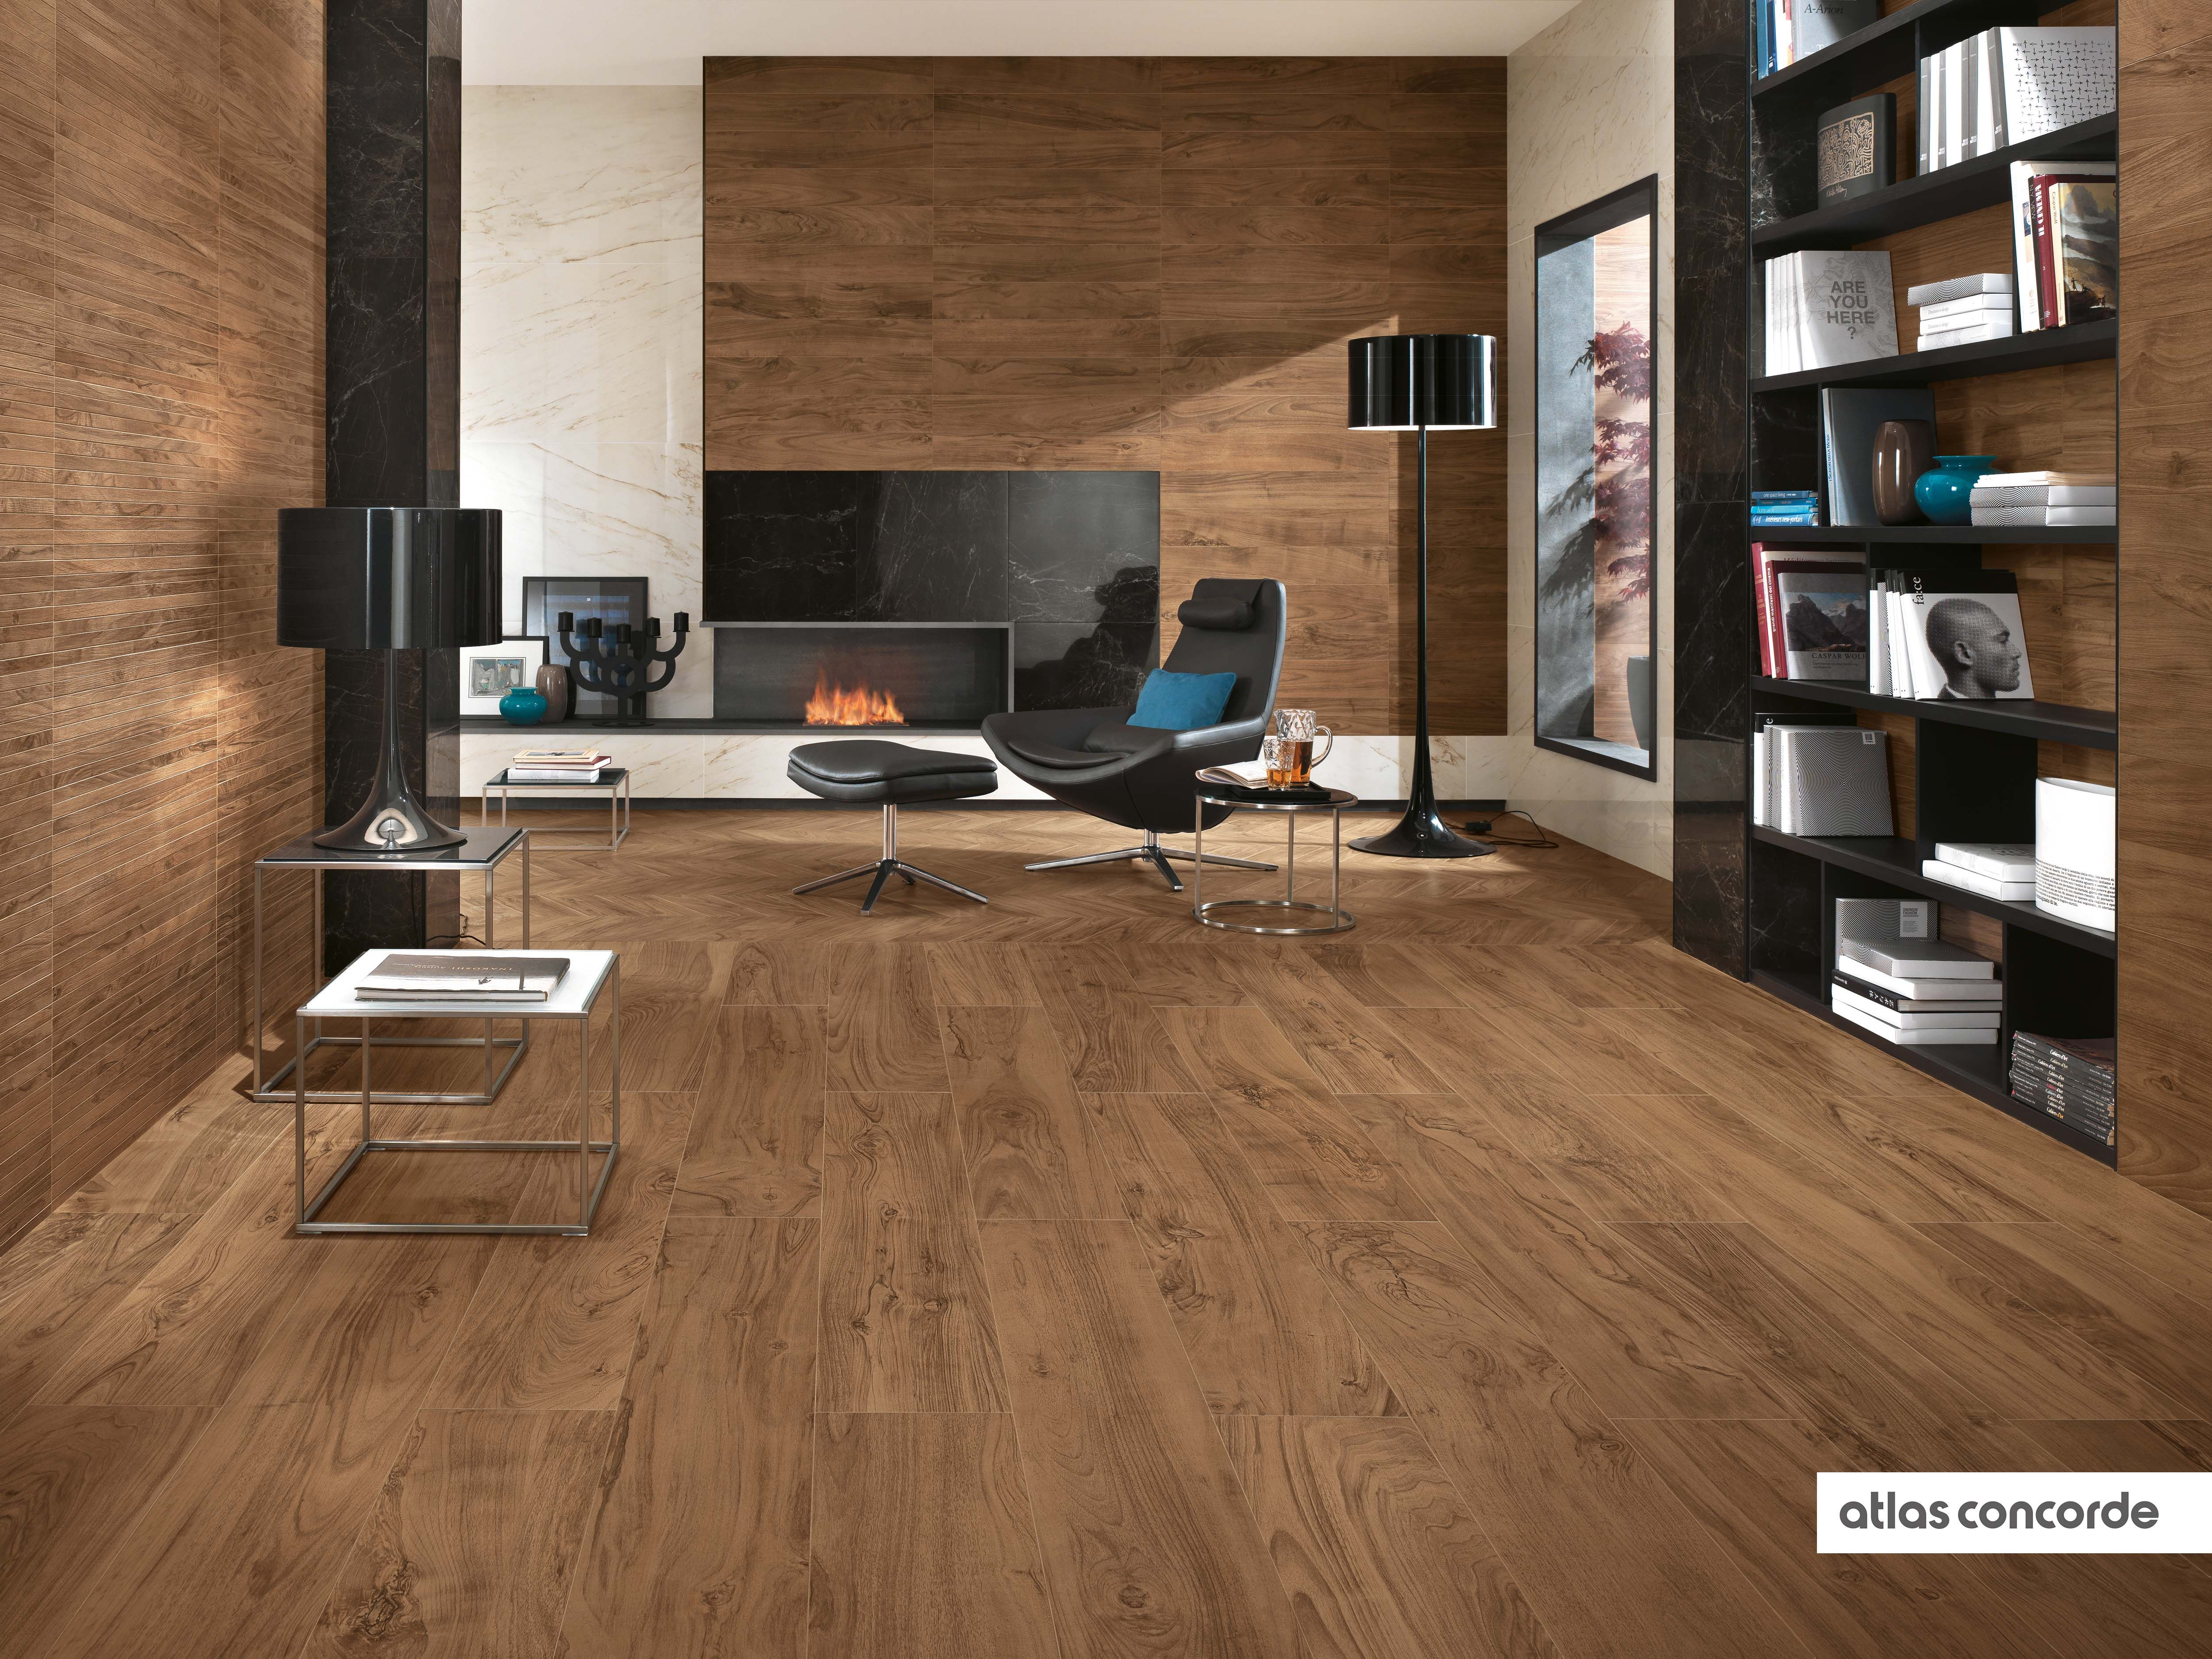 ETIC PRO | Wood Look for contemporary projects